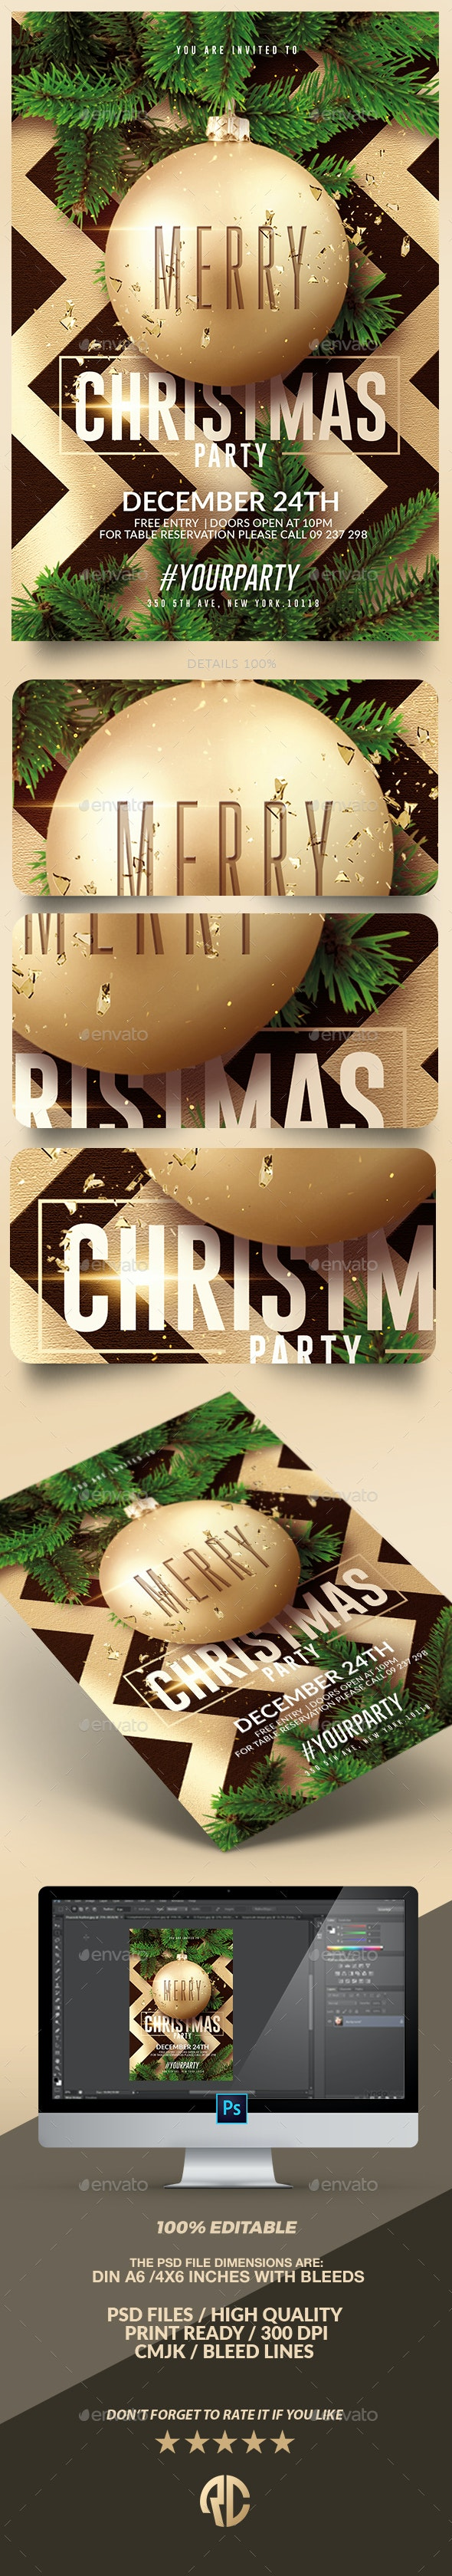 Classy Christmas Party | Psd flyer Template - Print Templates